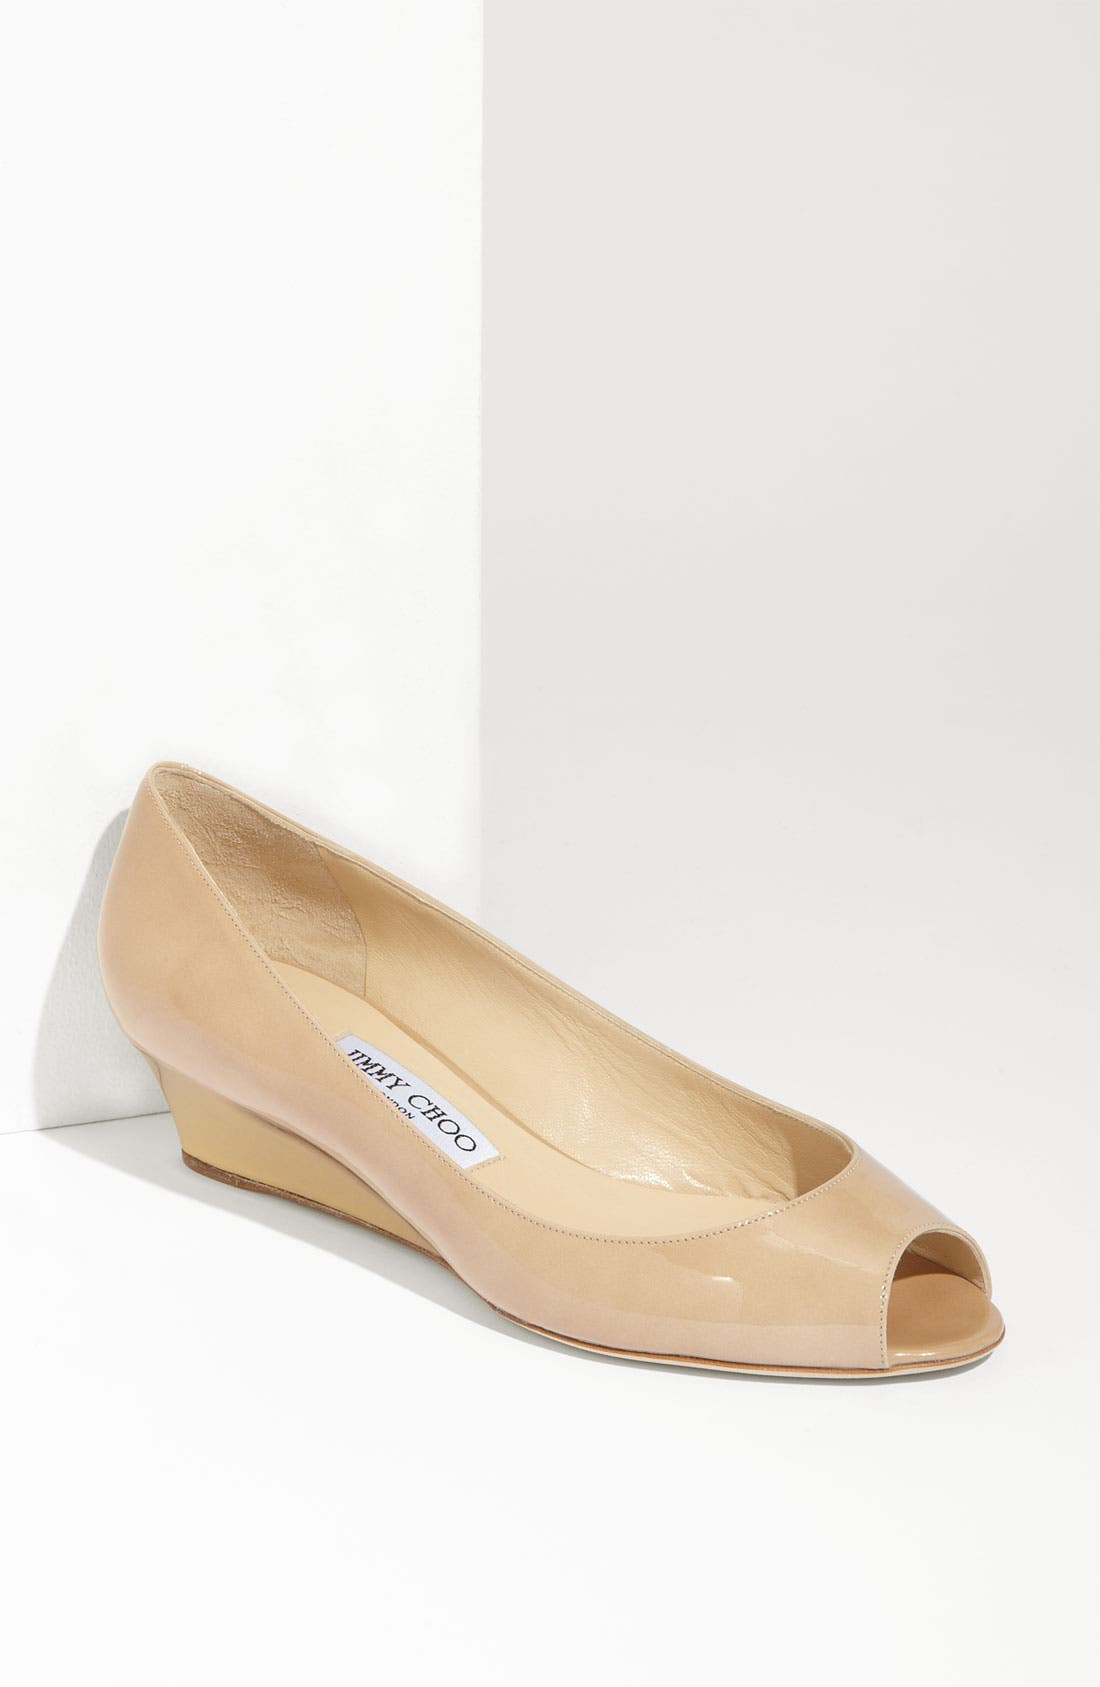 Main Image - Jimmy Choo 'Bergen' Peep Toe Wedge